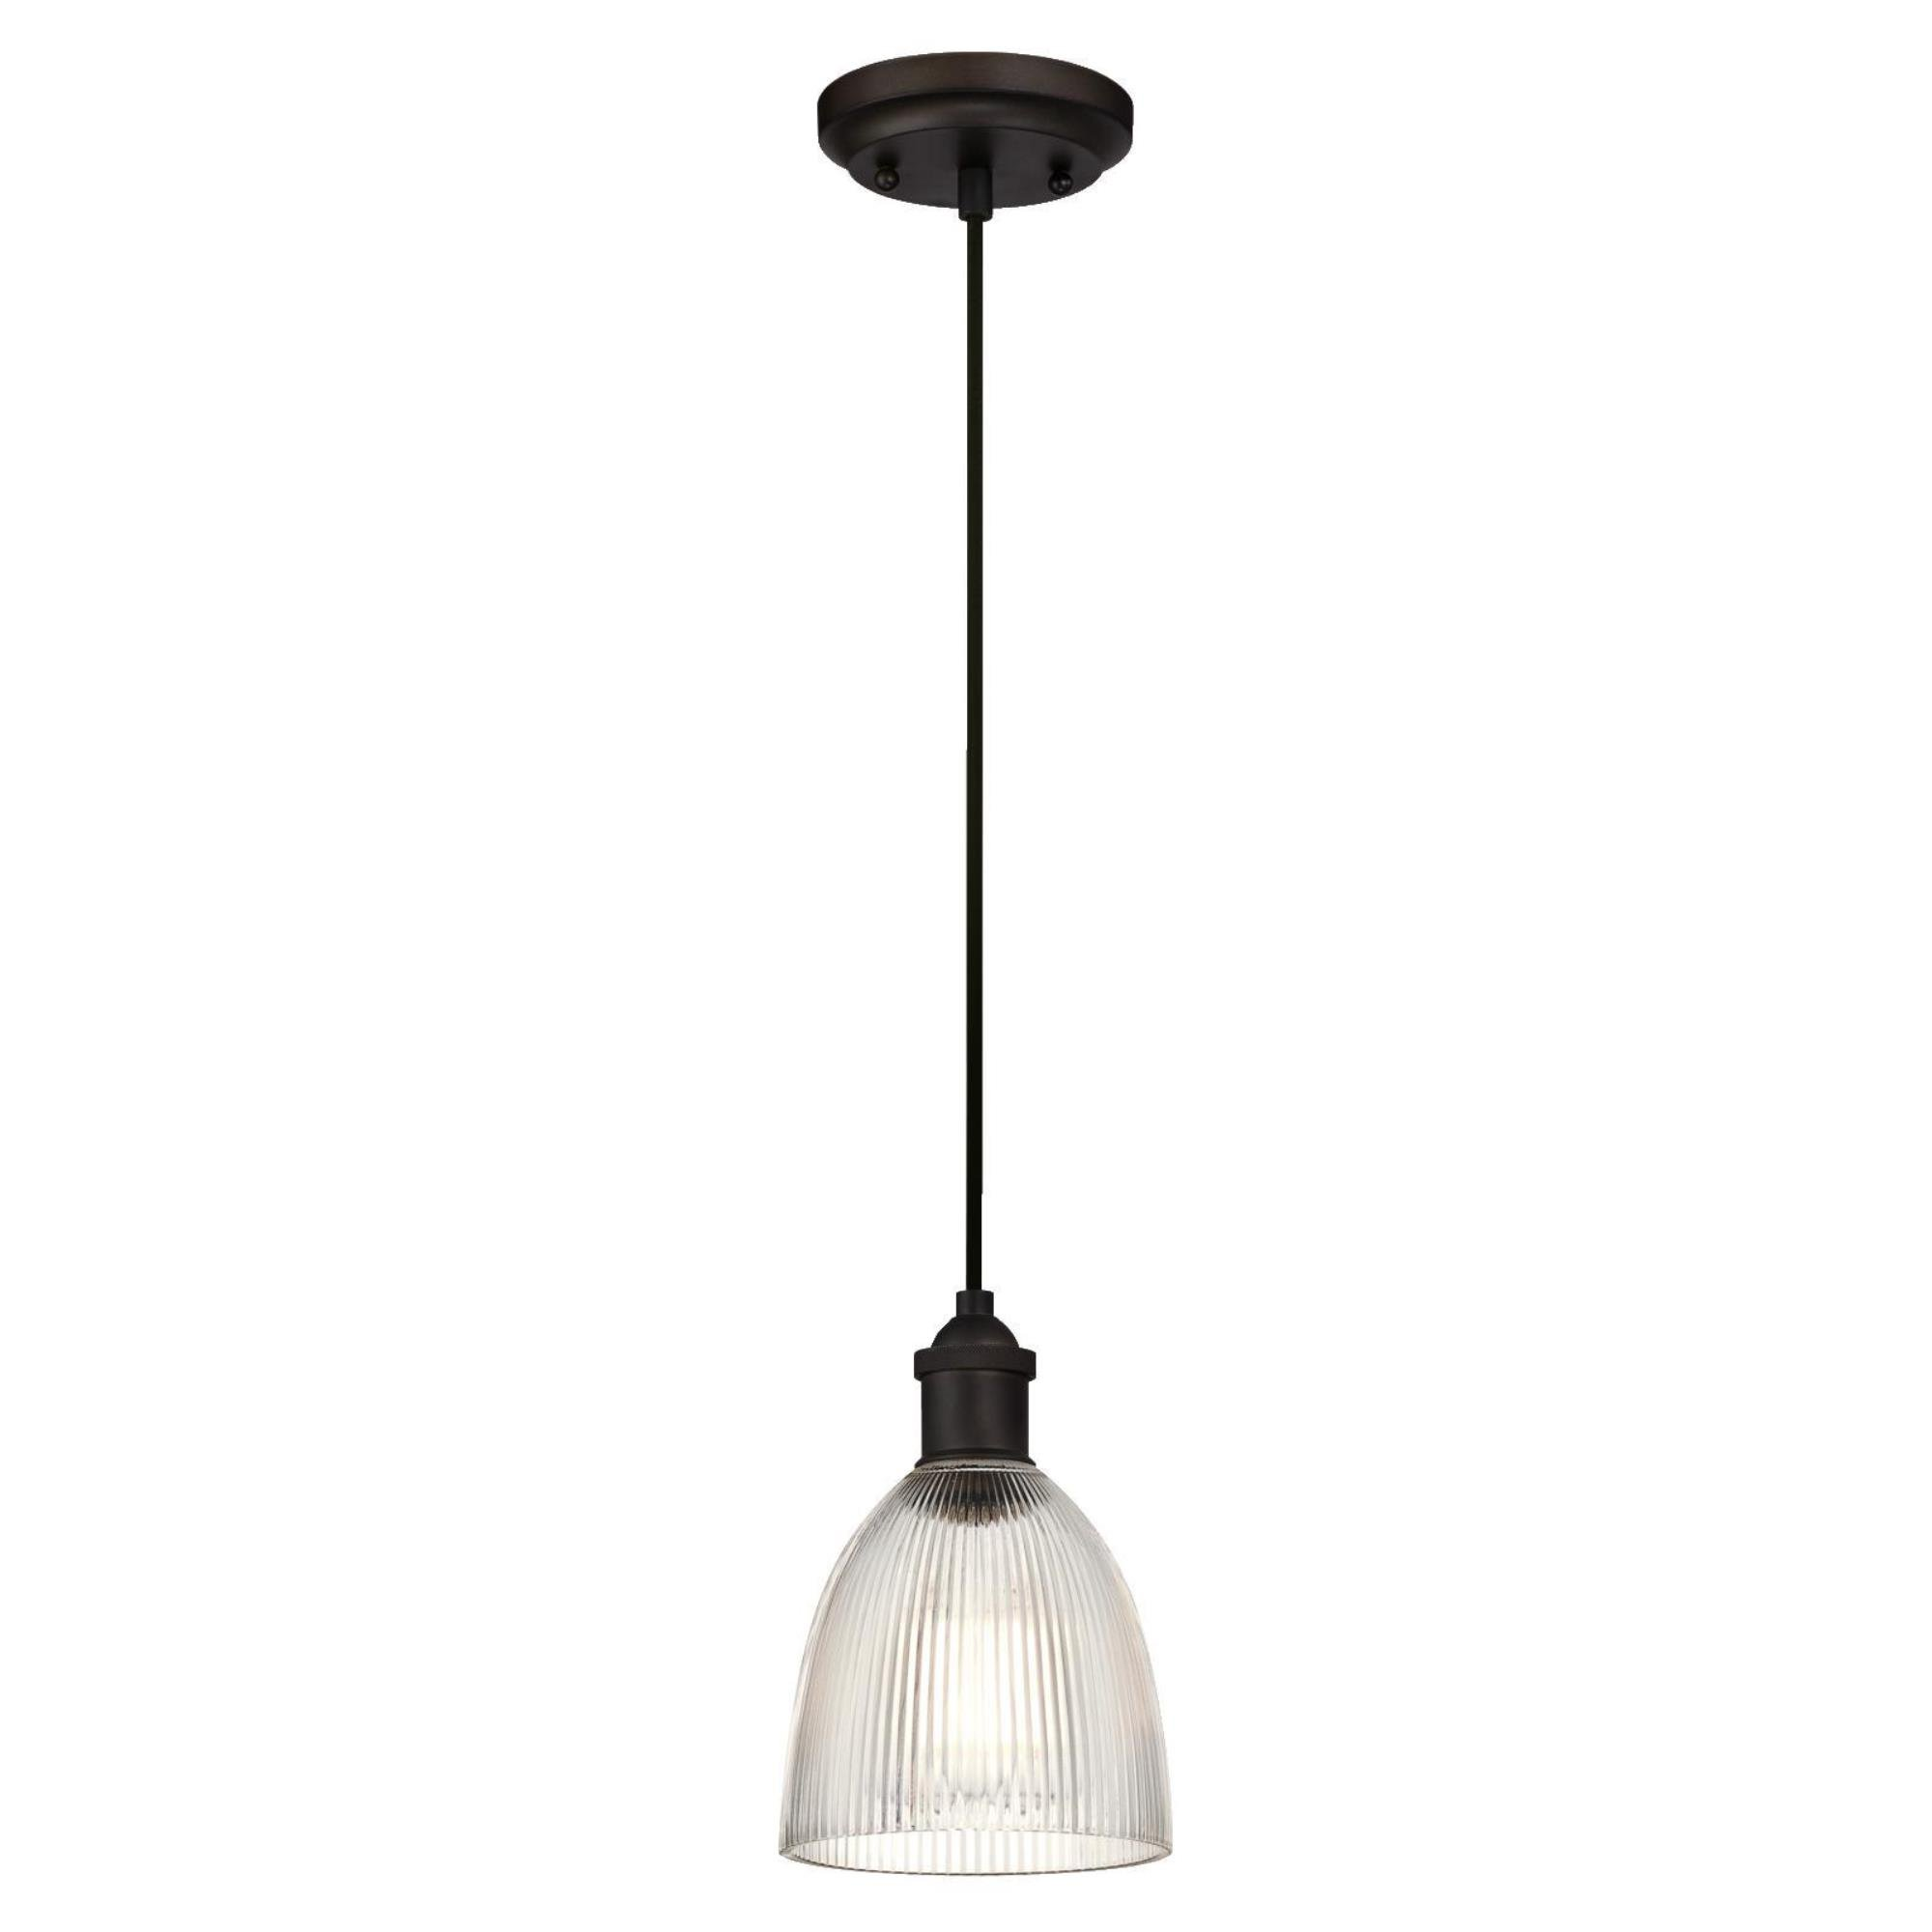 Westinghouse 6338500 One-Light Indoor Mini Pendant, Oil Rubbed Bronze Finish with Clear Ribbed Glass